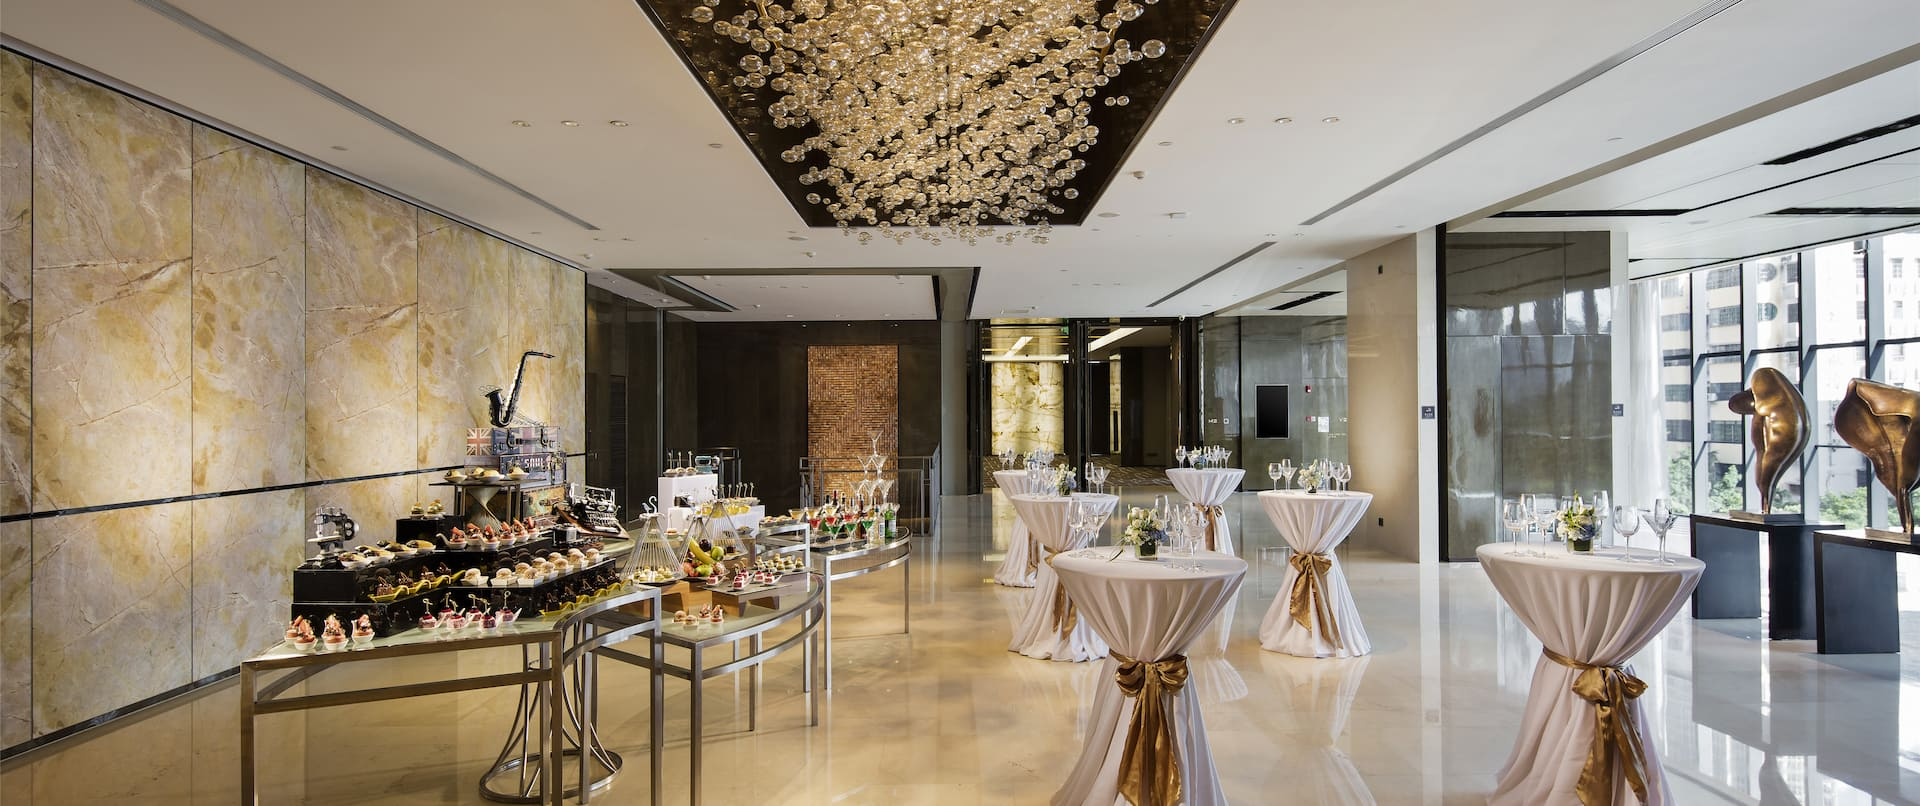 Spacious Foyer Area with Buffet Area